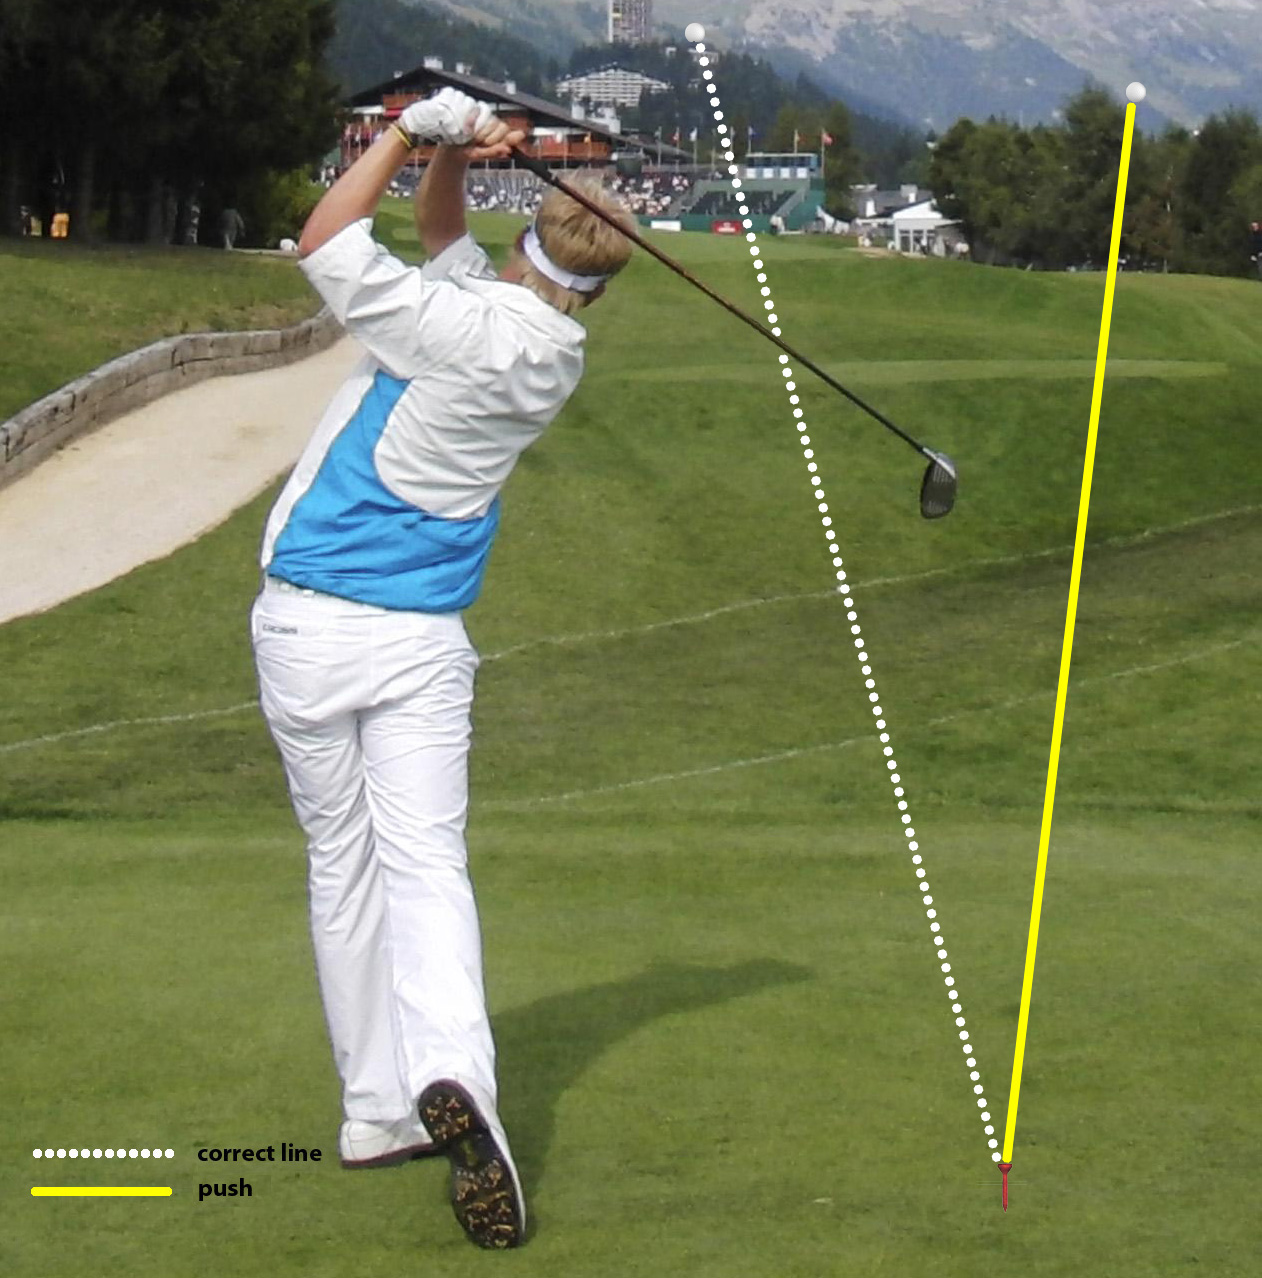 This Is The Third Article In Our Ten Of Best Golf Swing Tips For Beginners Series